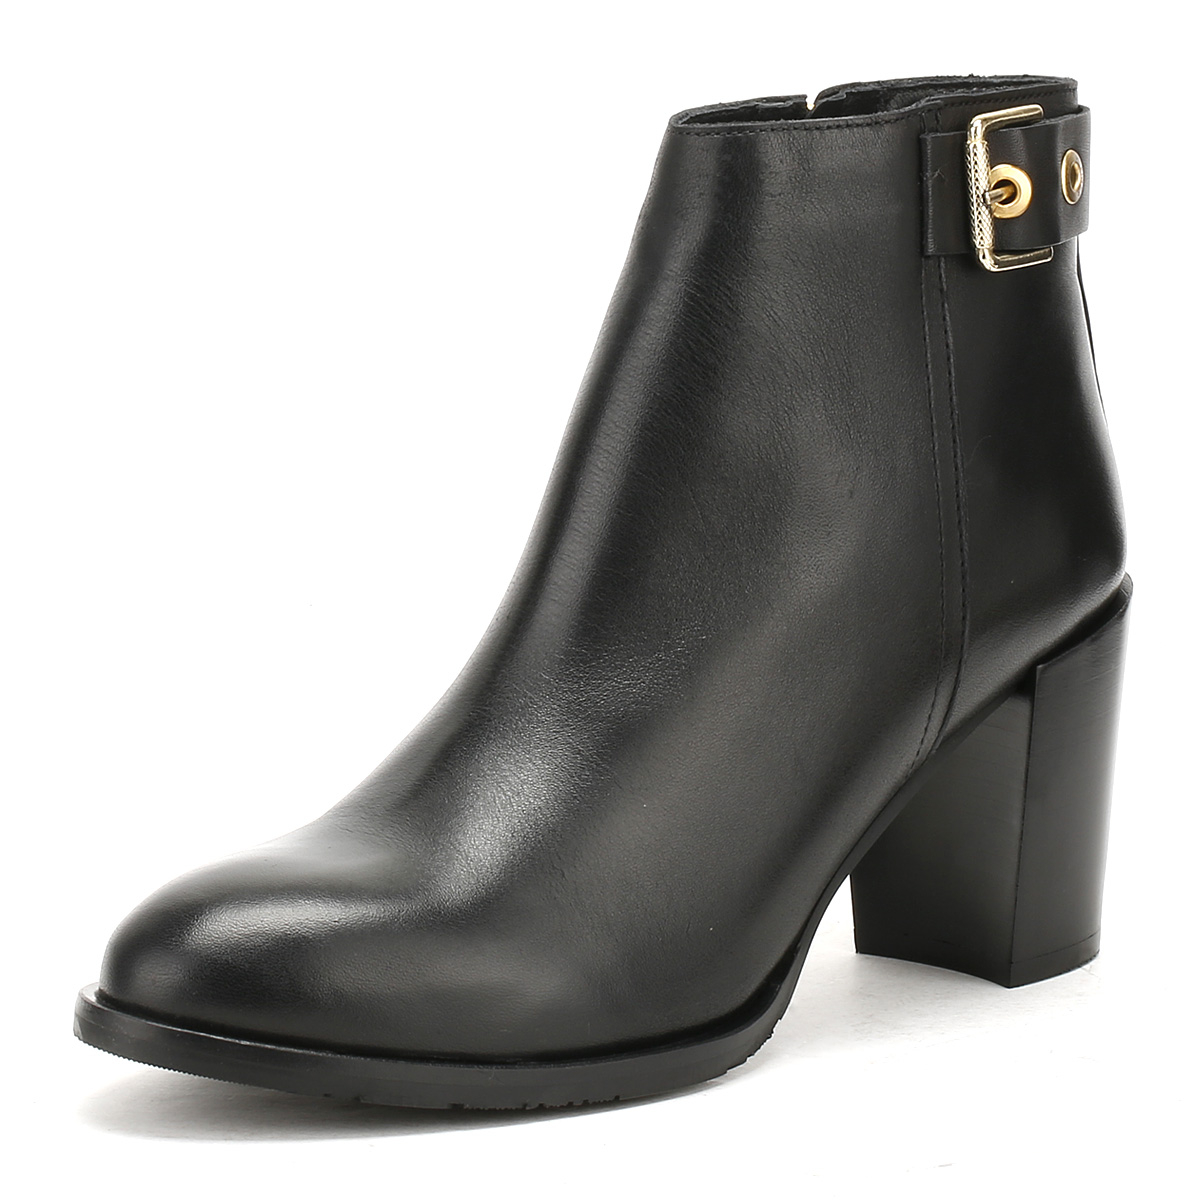 6ce14253413d6 Details about Tommy Hilfiger Womens Black Penelope Ankle Boots High Heel  Zip Up Smart Shoes